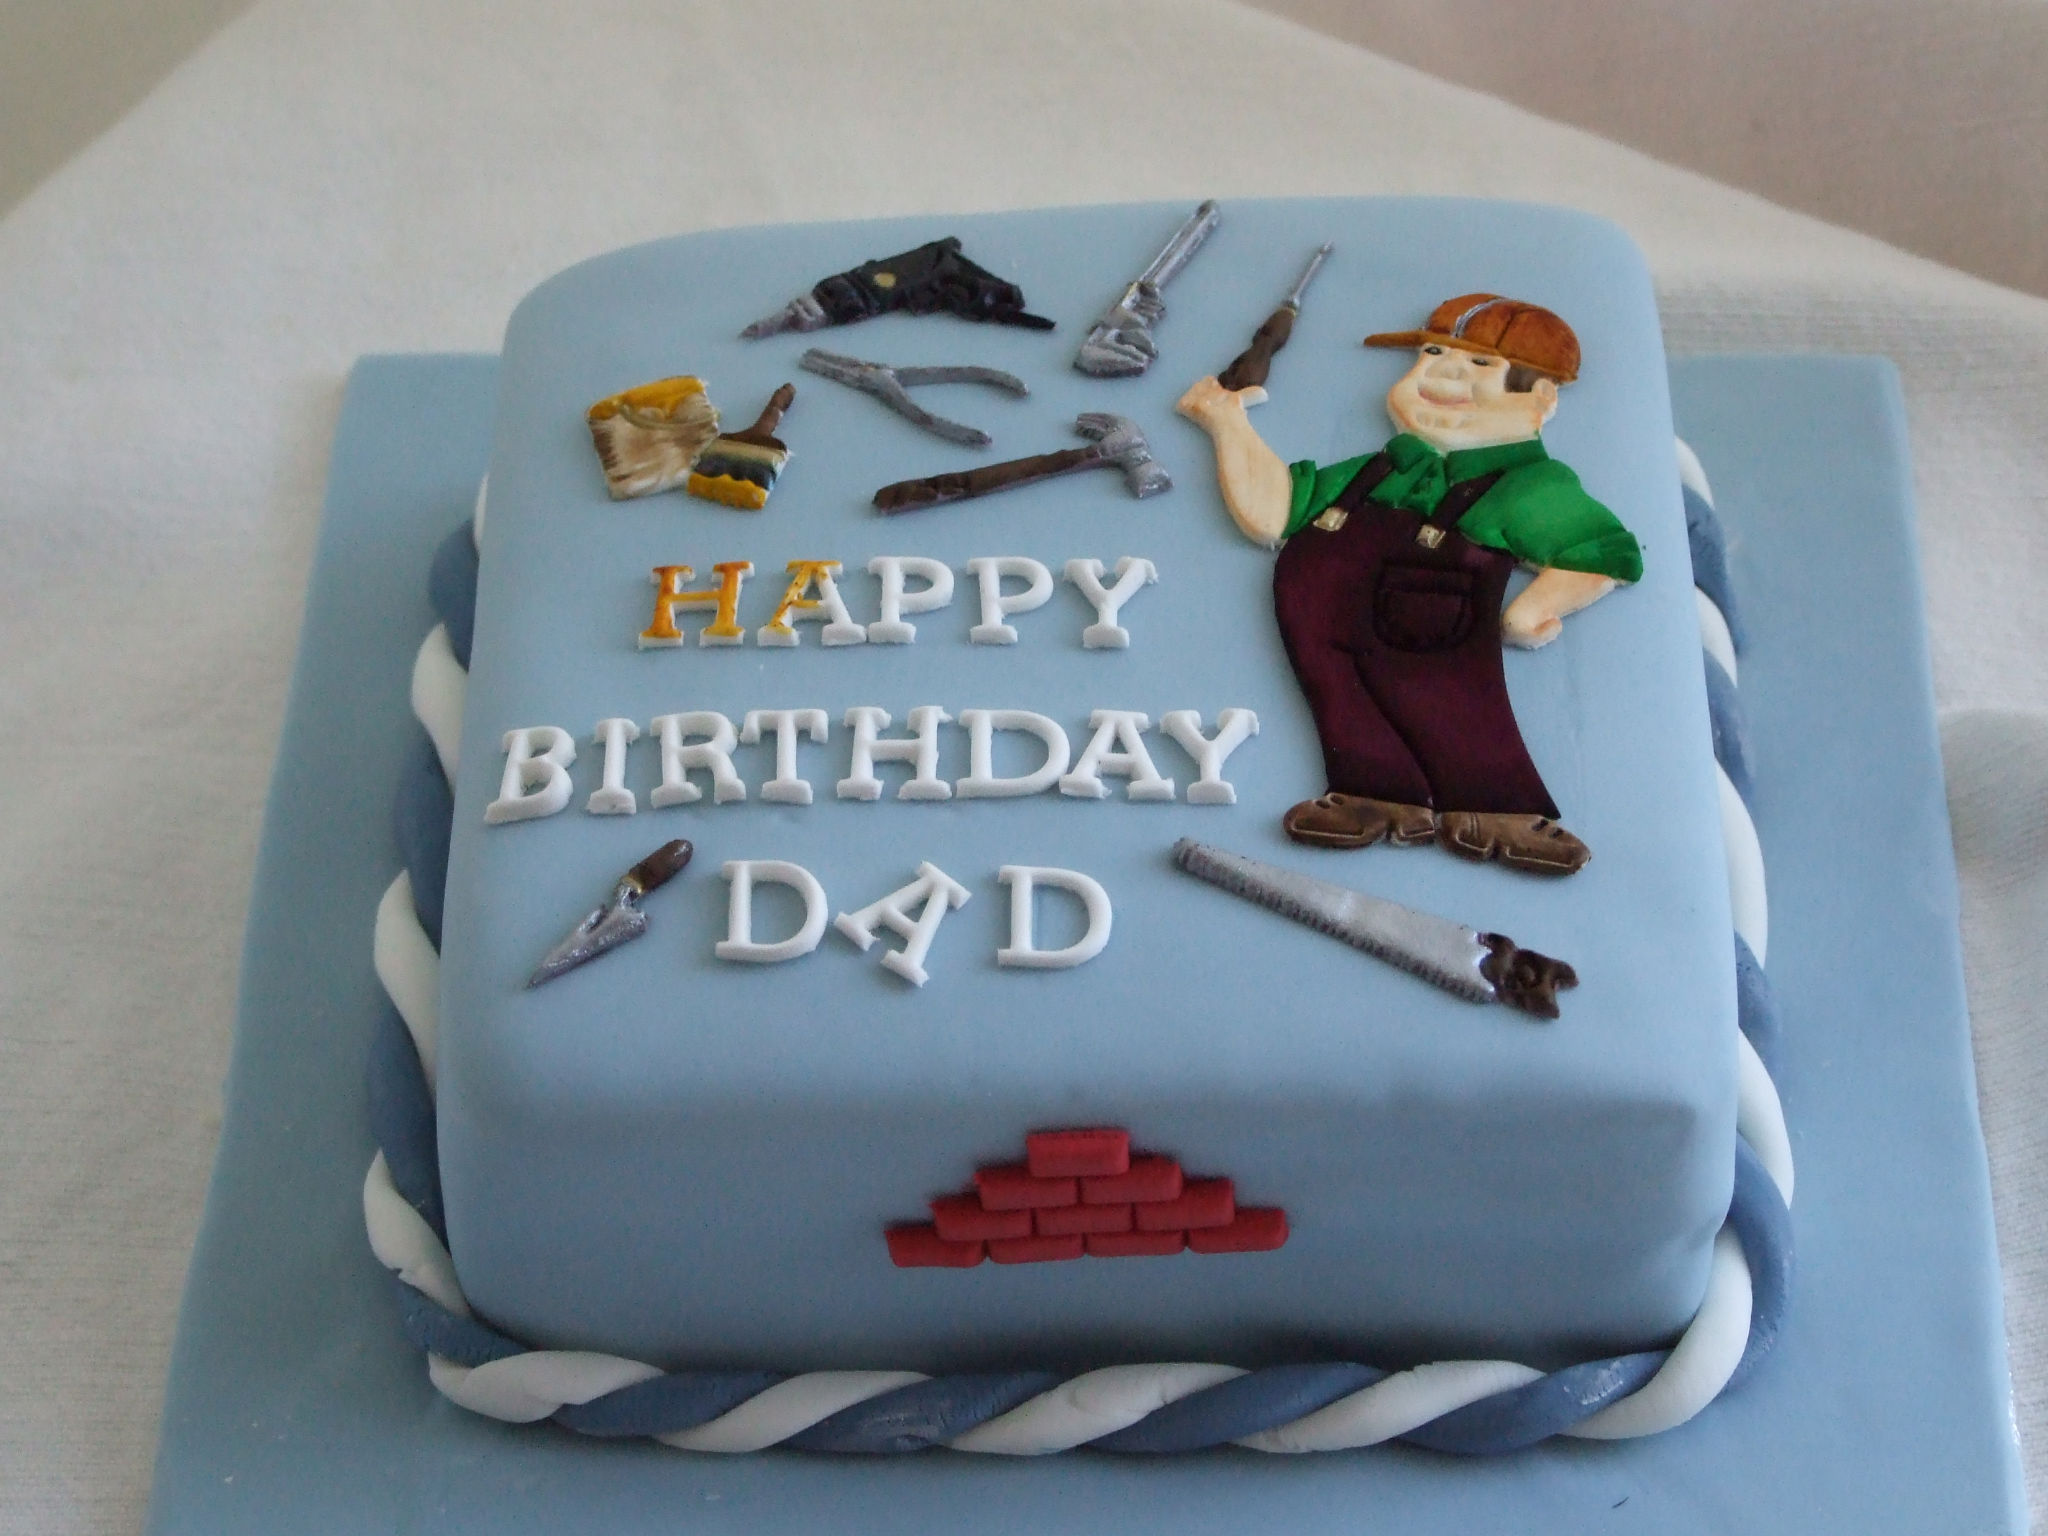 Download 60th birthday cake ideas for dad - Birthday Cake